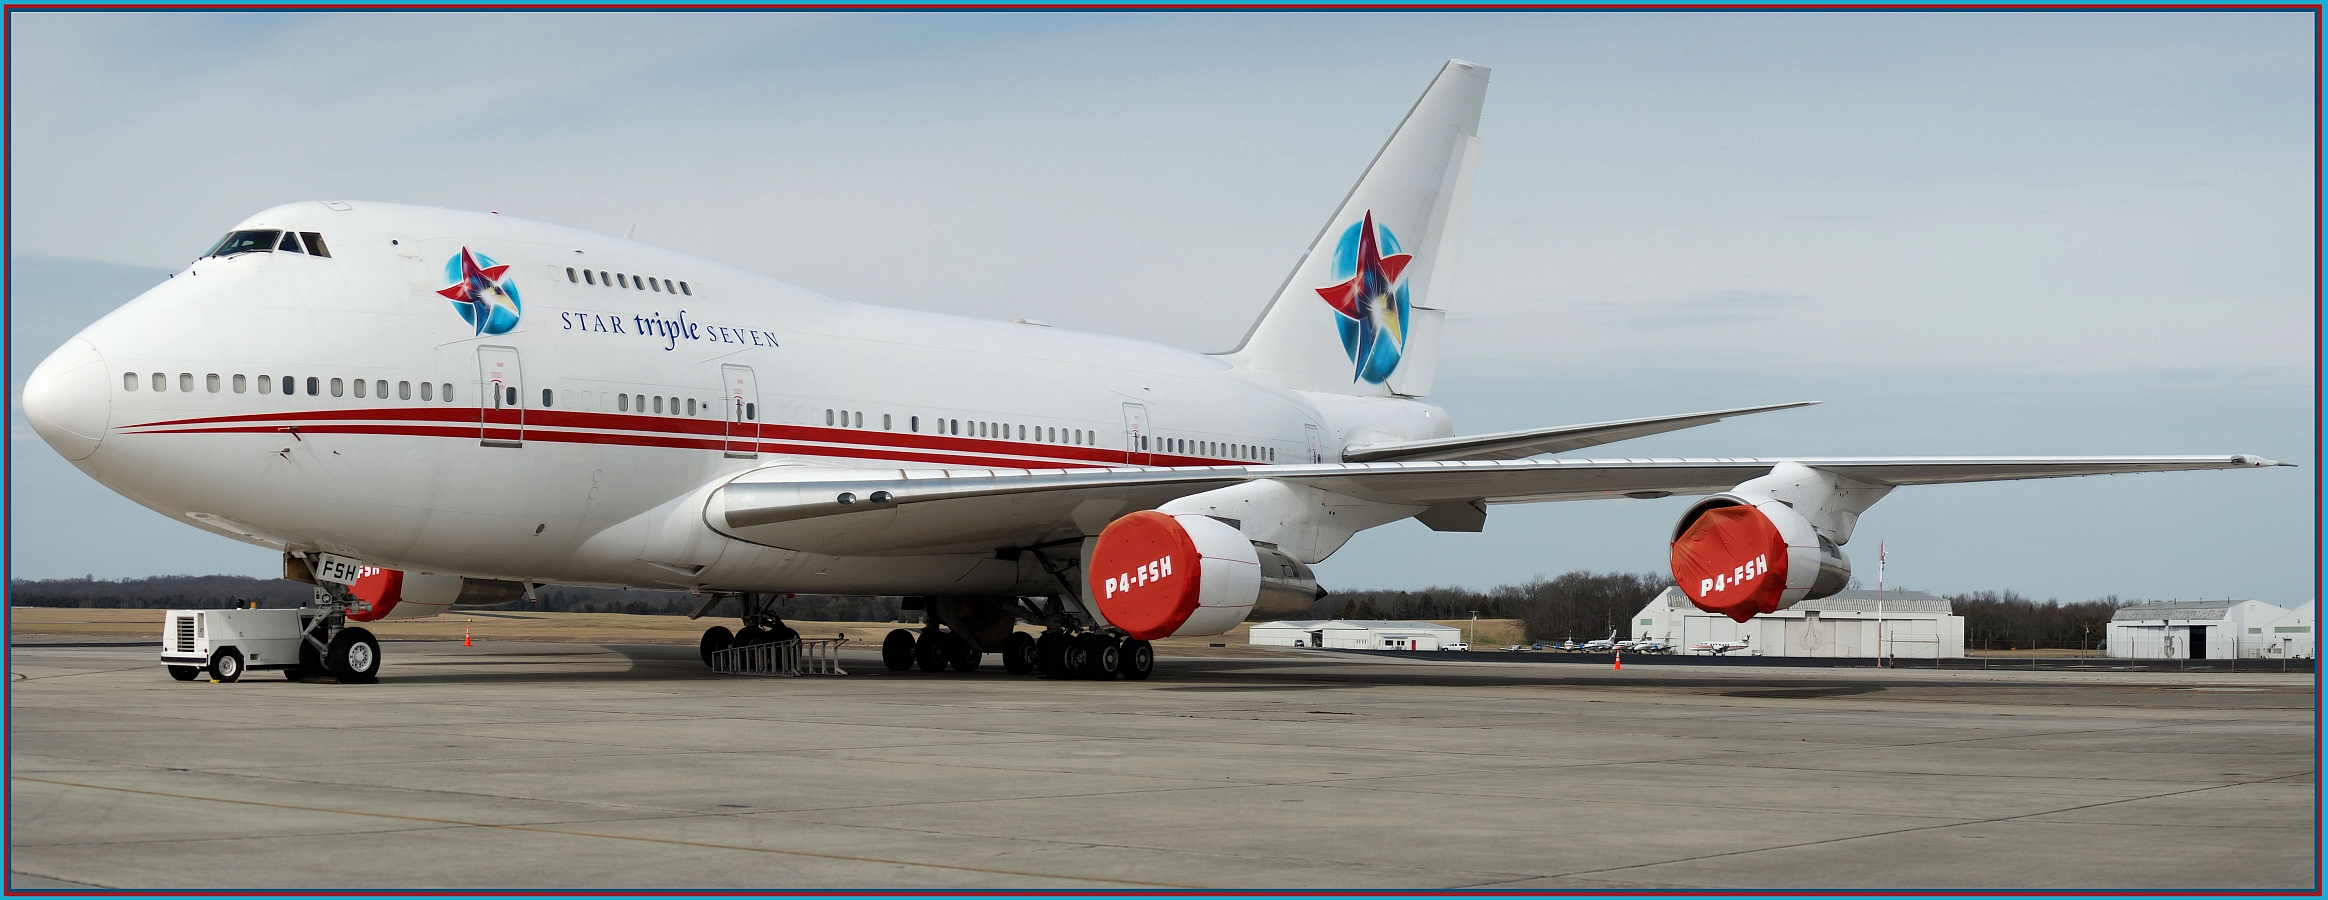 Star Triple Seven (Ernest Angley Ministries) Boeing 747SP-31 (P4-FSH) **HUGE Up-Close Panoramic**